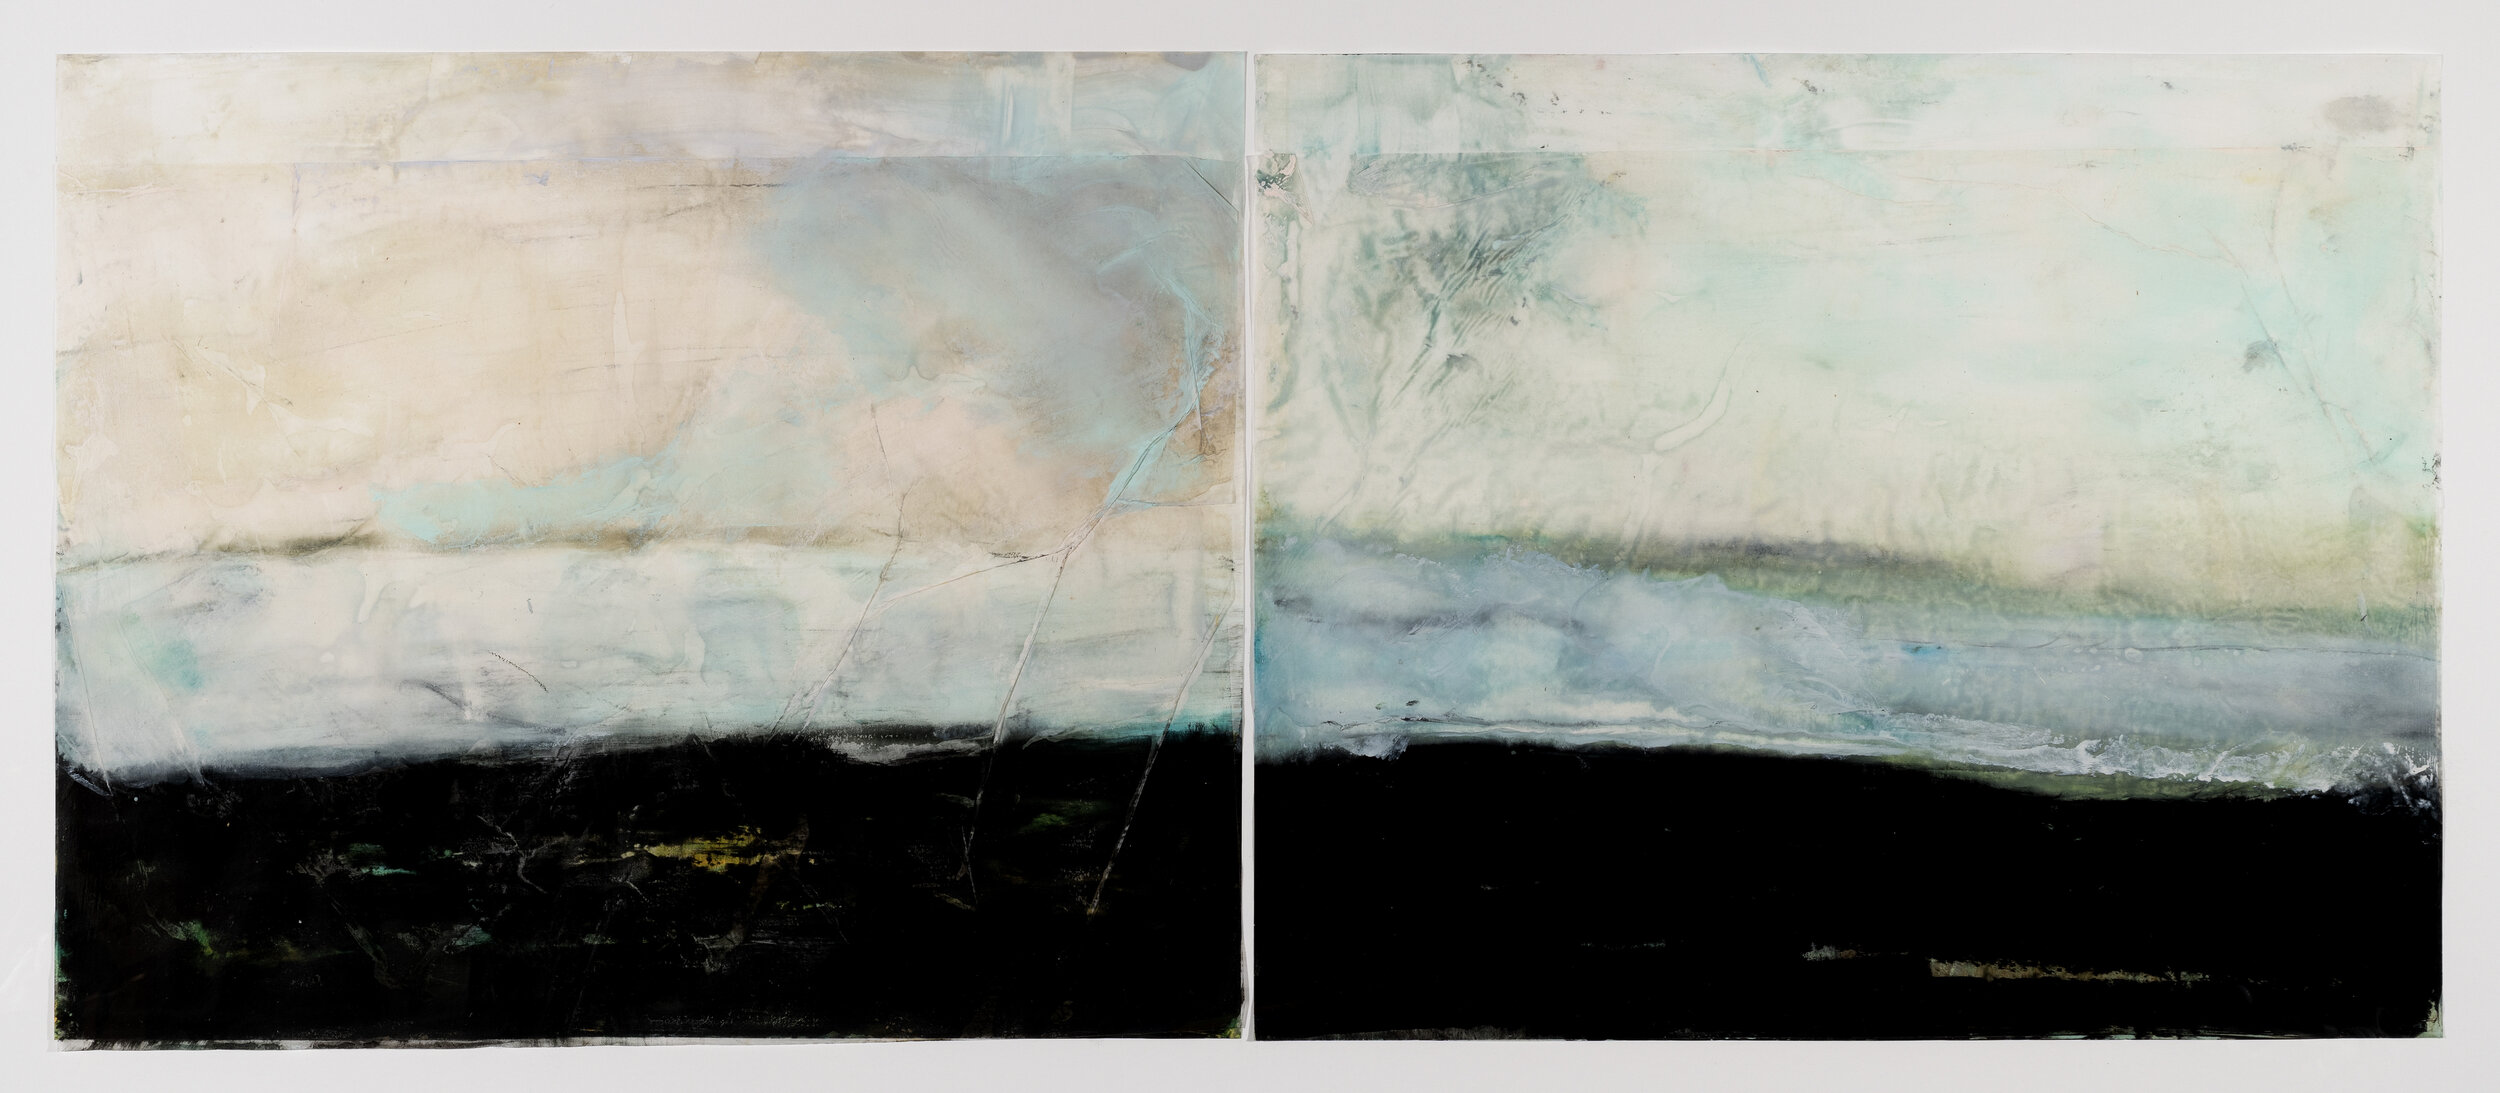 Old House Beach, 2019, diptych, encaustic wax on Japanese rice paper, 32 x 56 in, $5,000